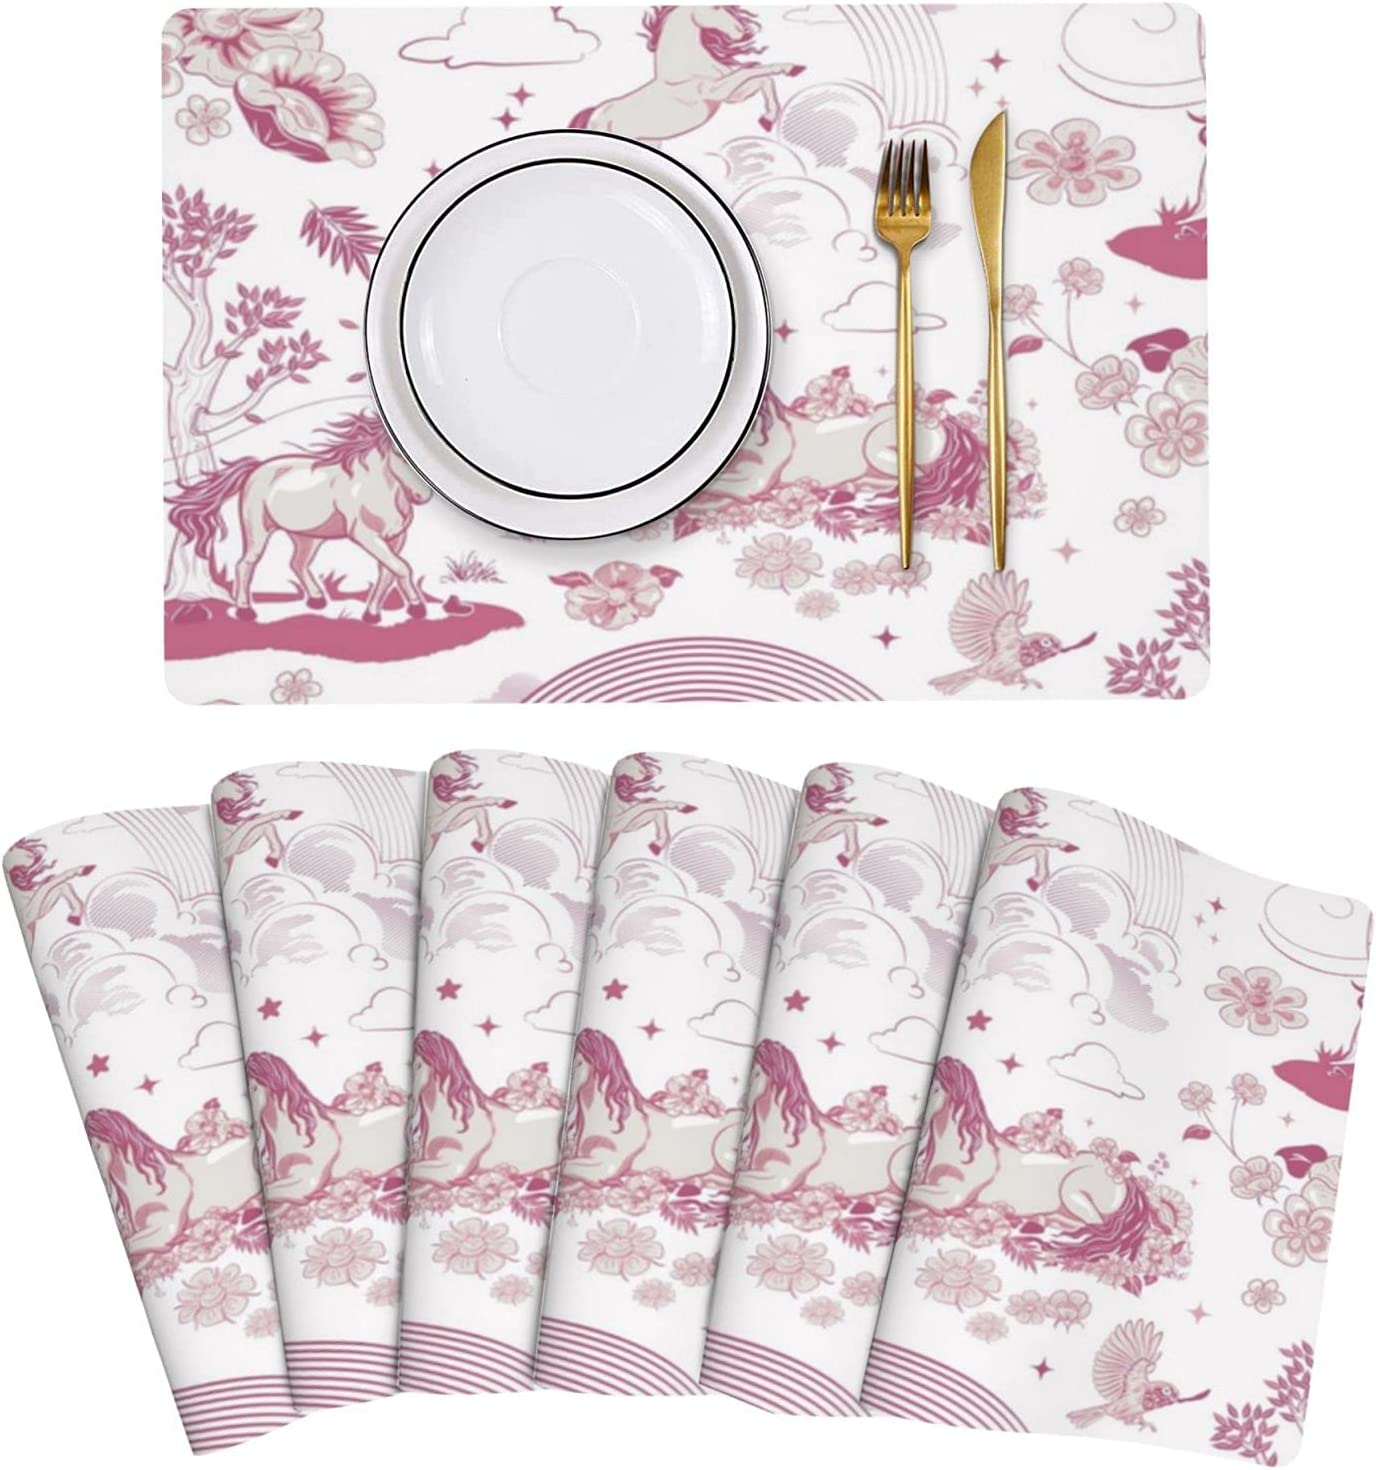 Magical Unicorn Leather Placemats Set of Resistant 6 Non-S Financial sales sale Stain service